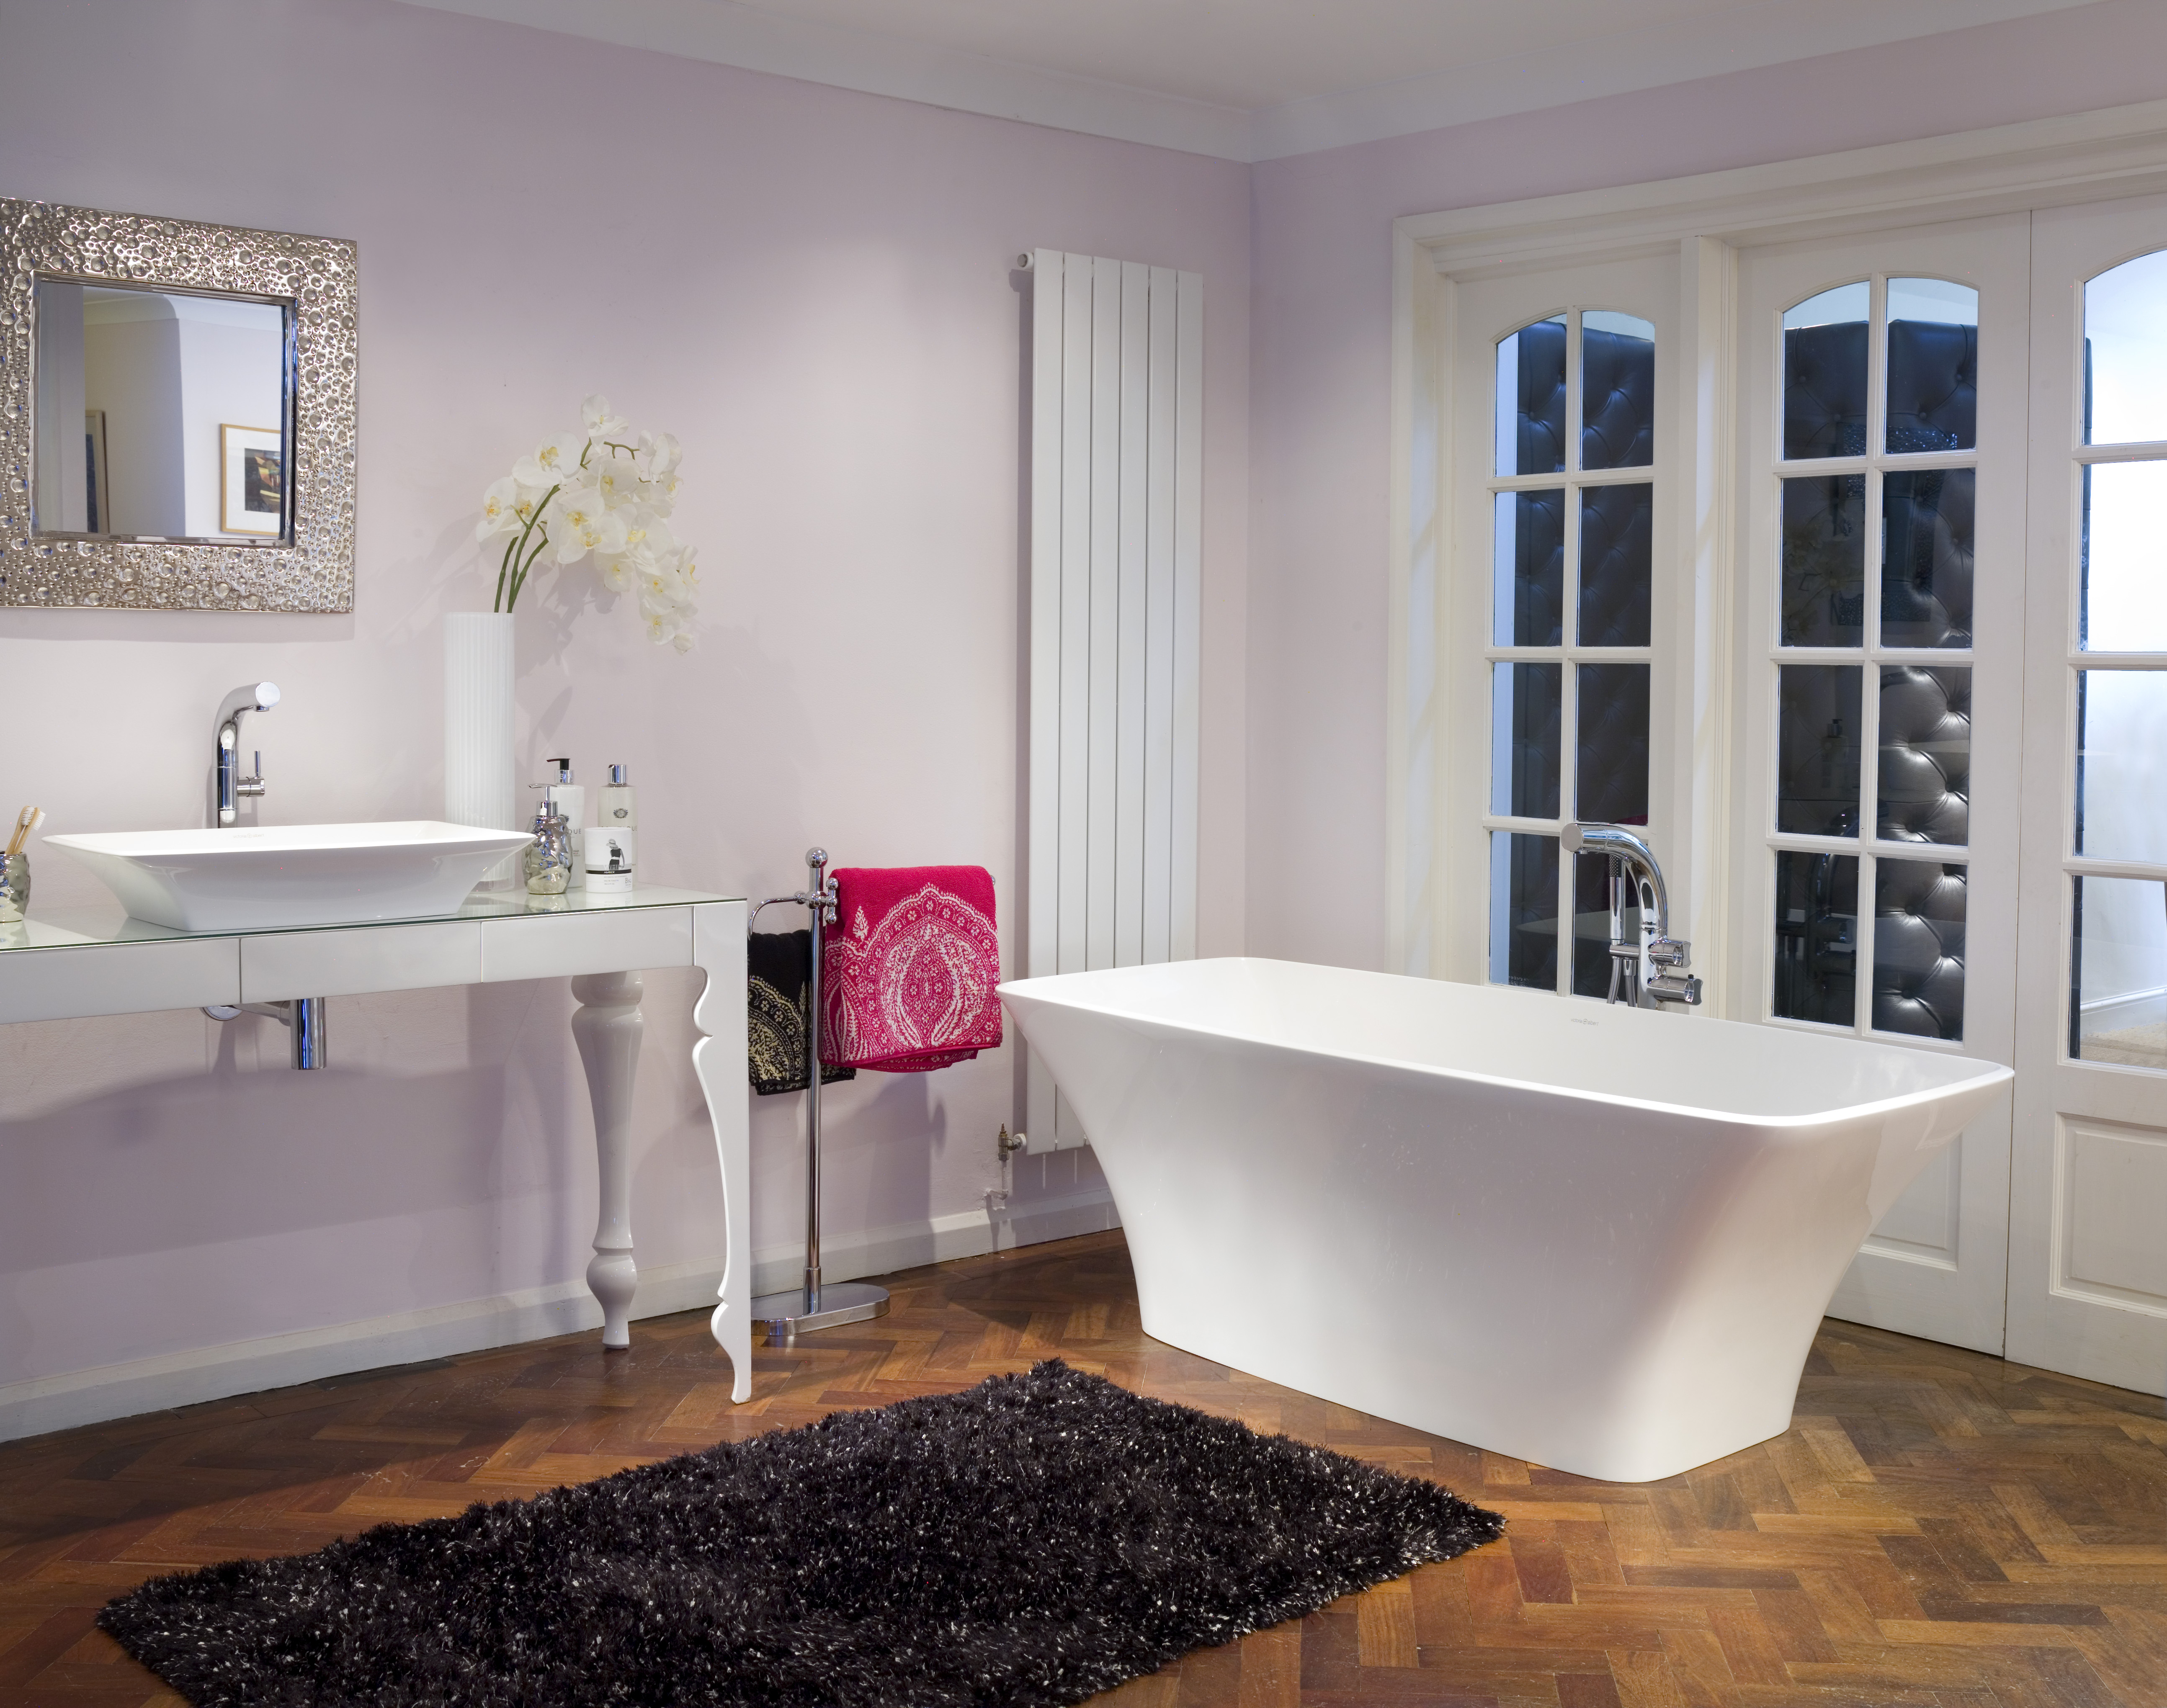 Luxury Bathrooms Tauranga suppliers – building guide – house design and building tips